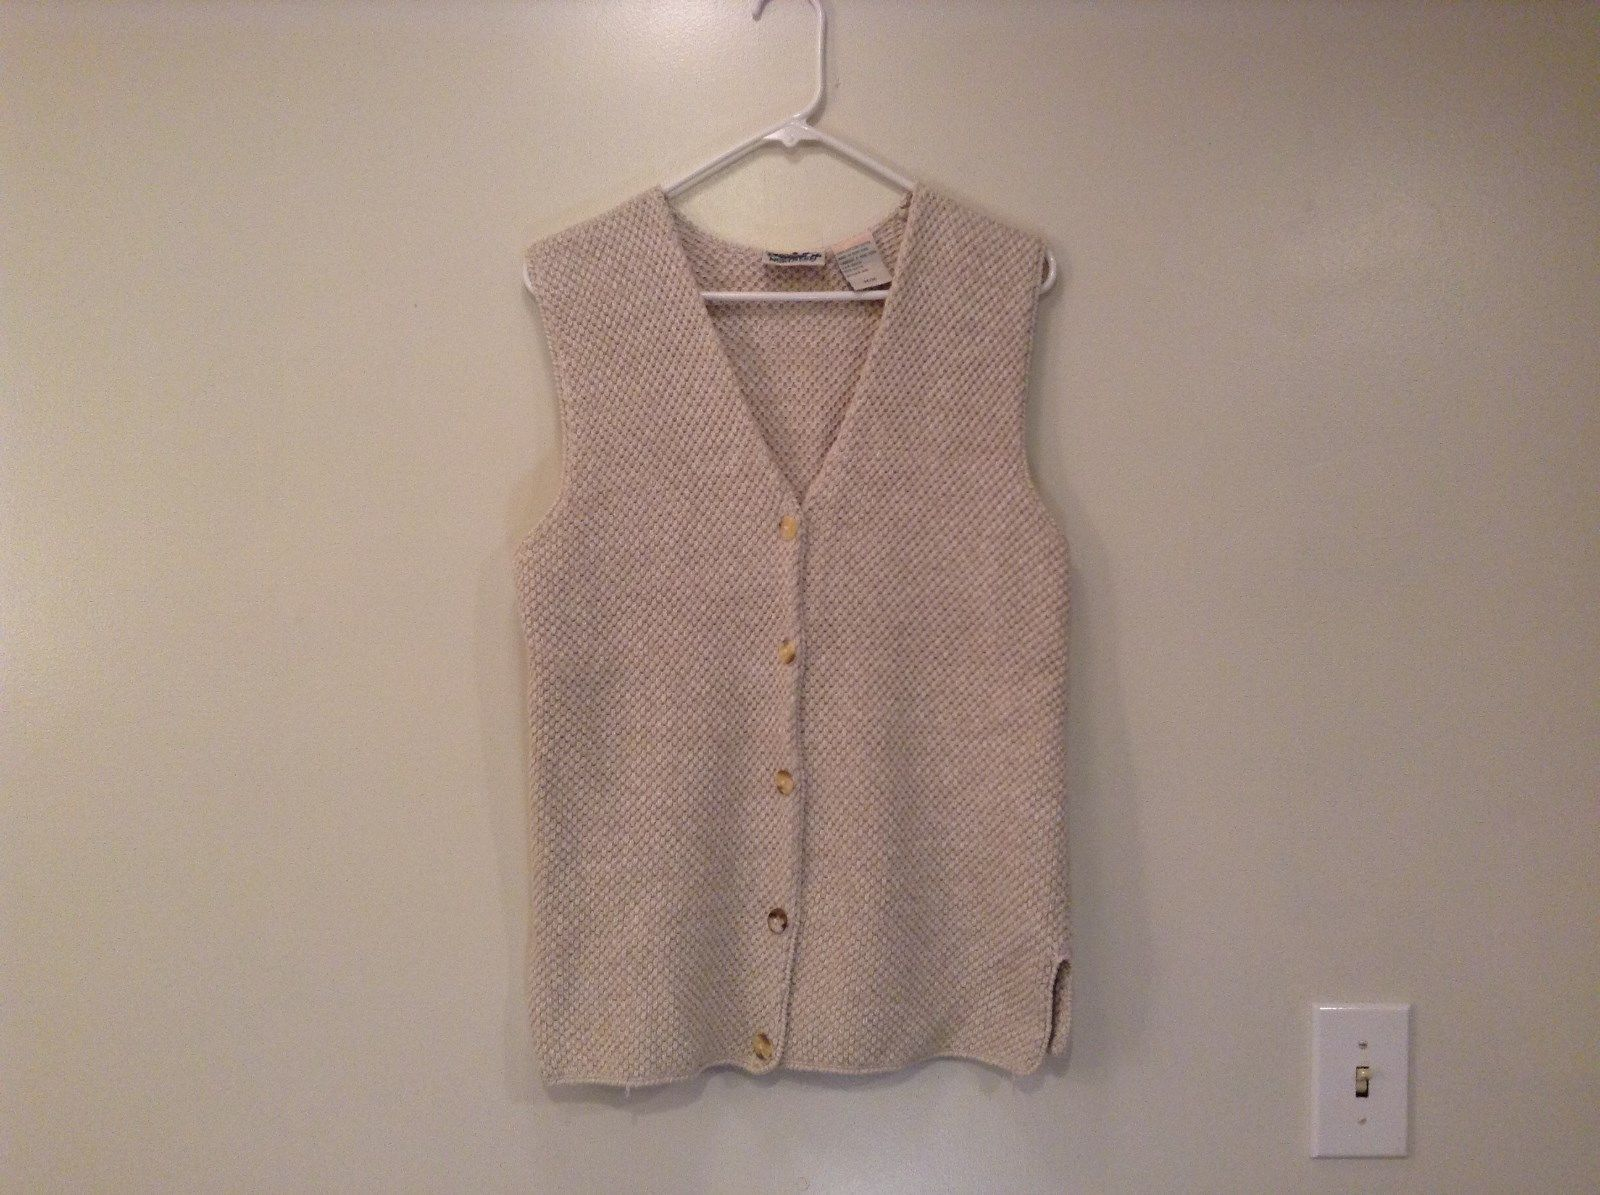 Natural Beige V Neck Knitted Vest 5 Button Closure Size M Northern Reflections